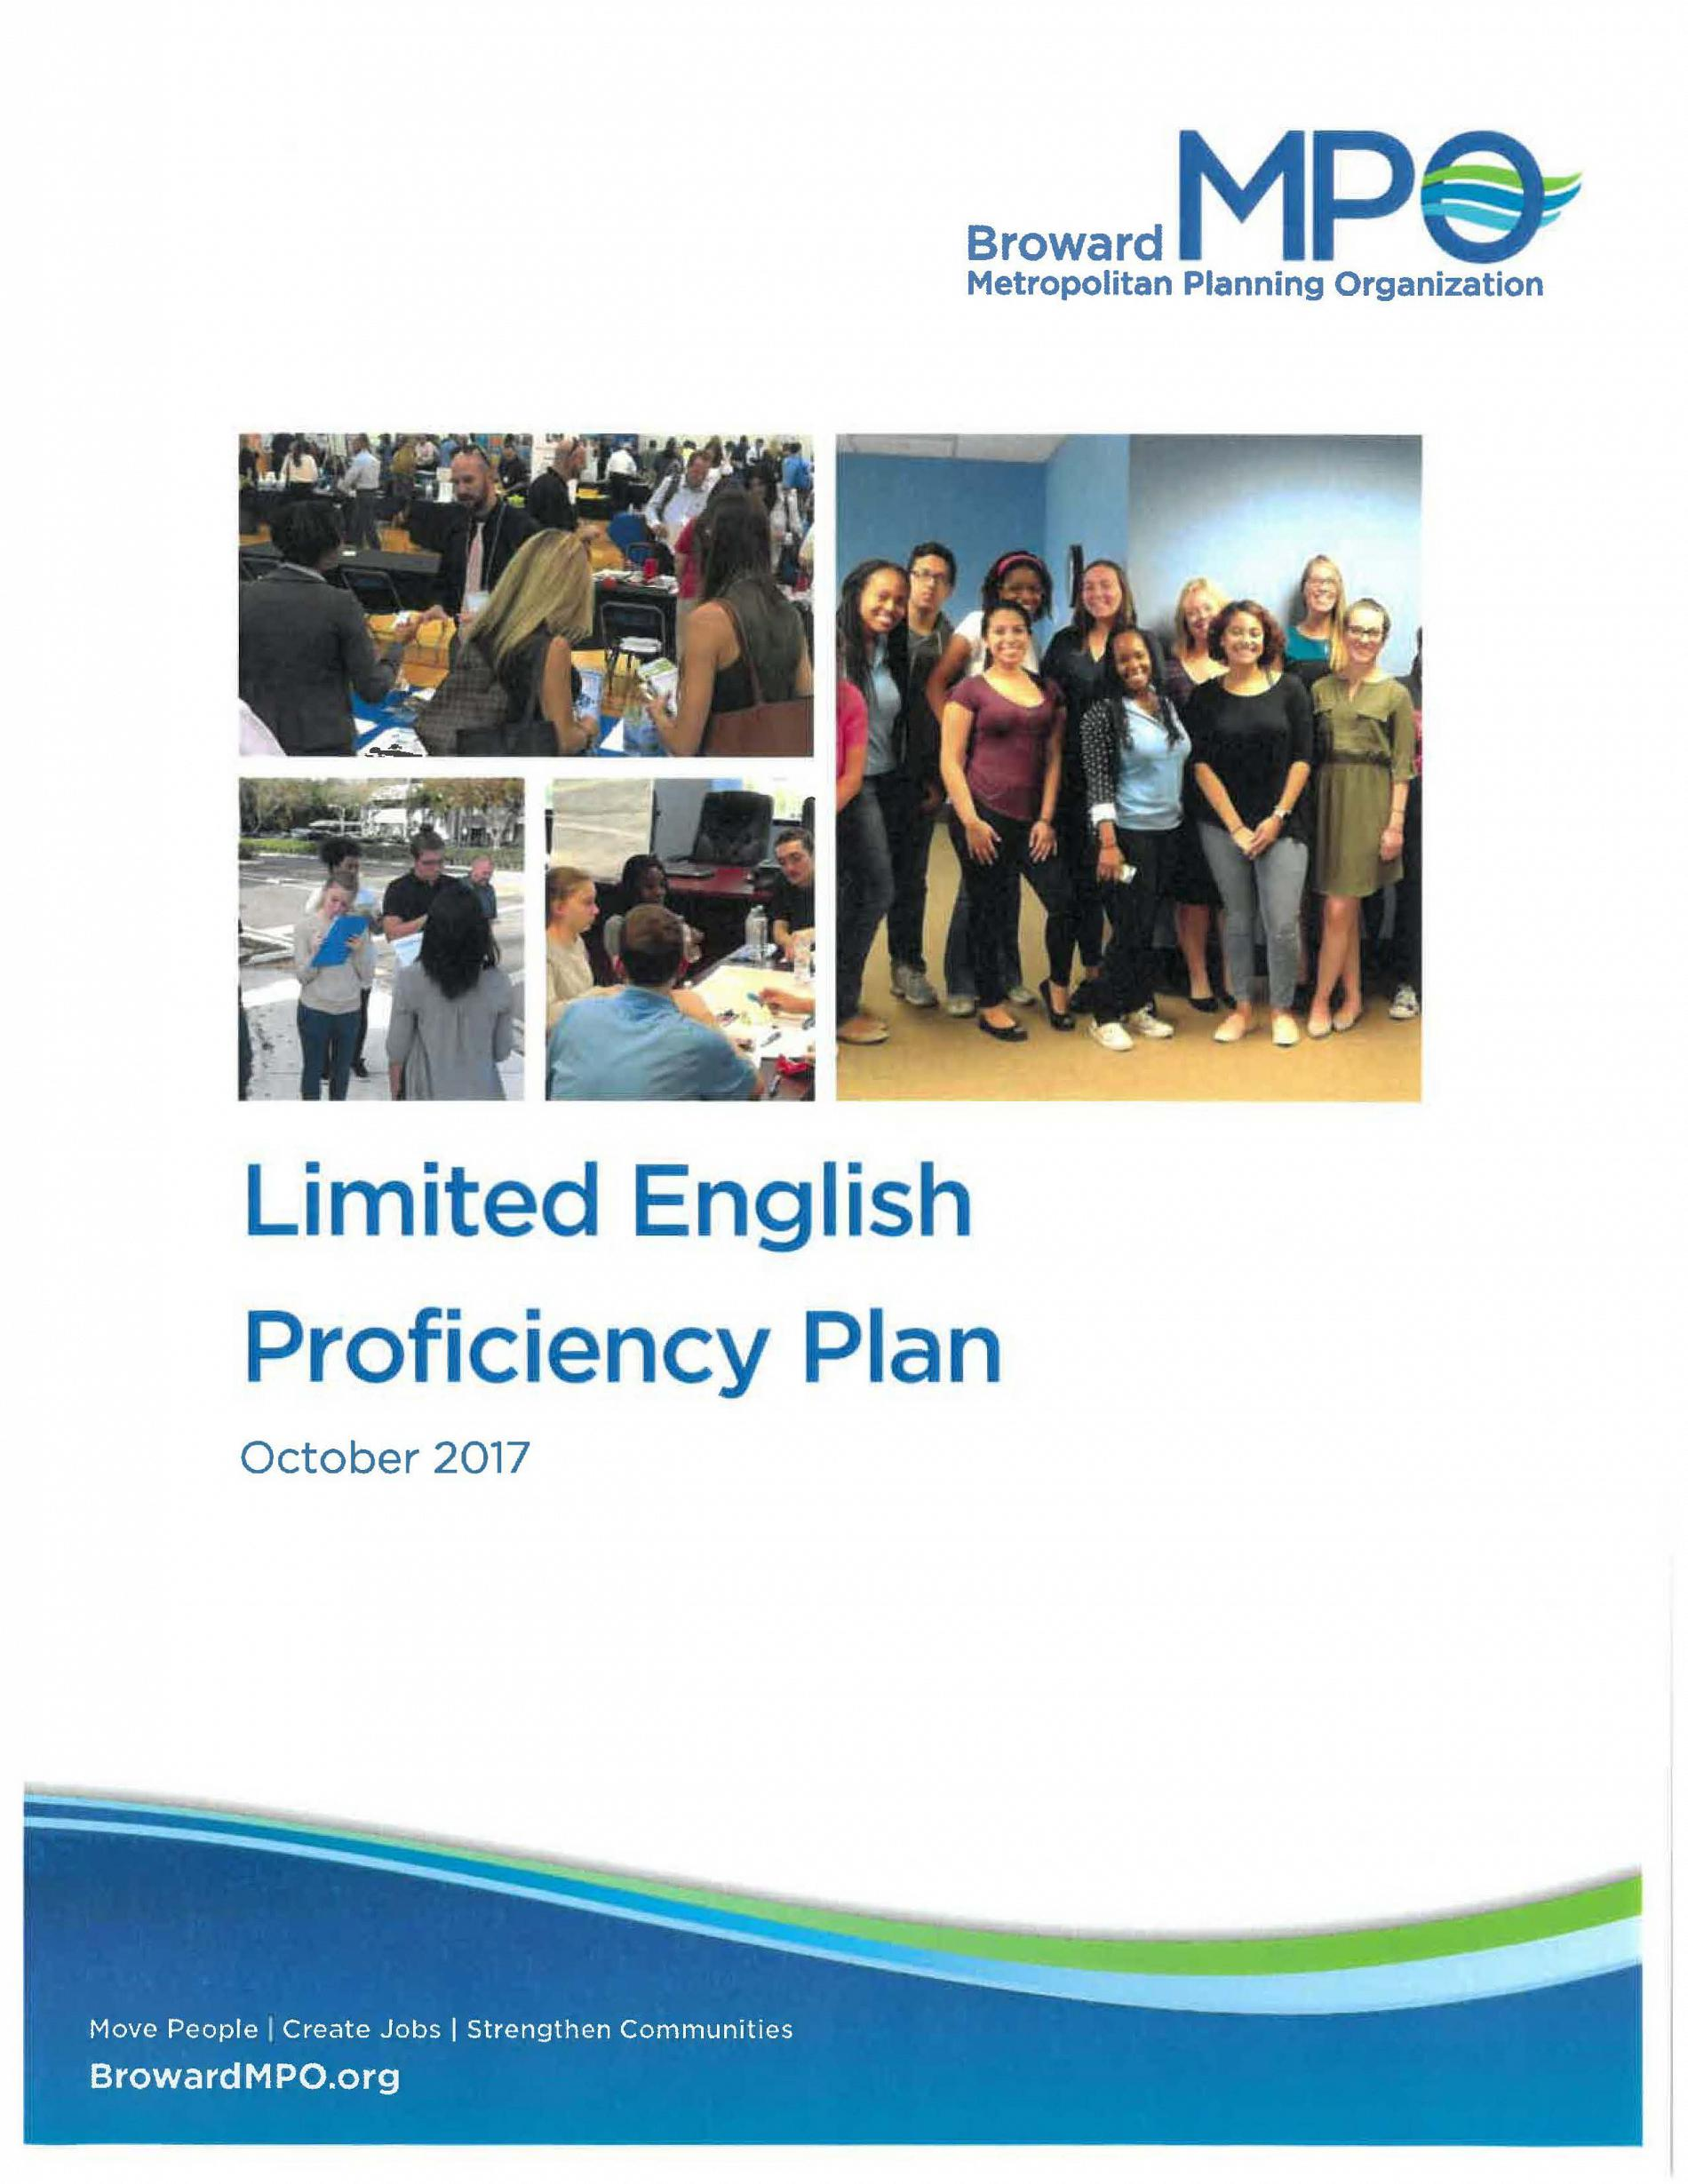 Limited English Proficieny Program ADA Page 01